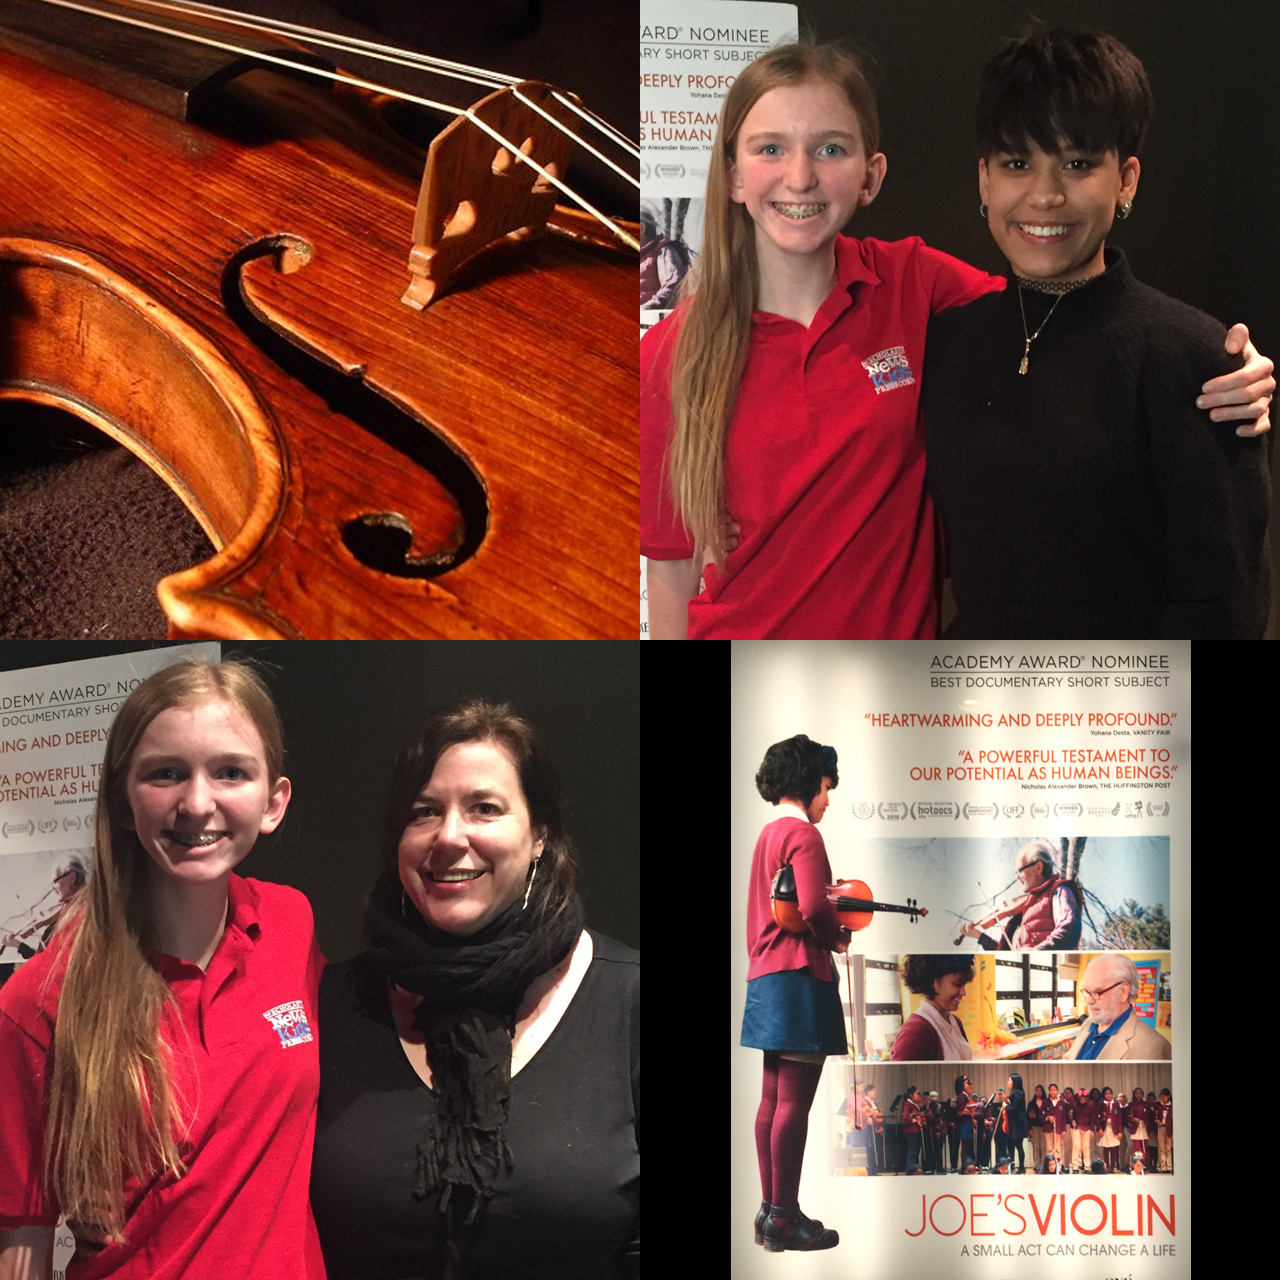 Top right, Skylar with Brianna Perez, bottom left, Skylar with Kathleen Drohan, bottom right, Joe's Violin movie poster